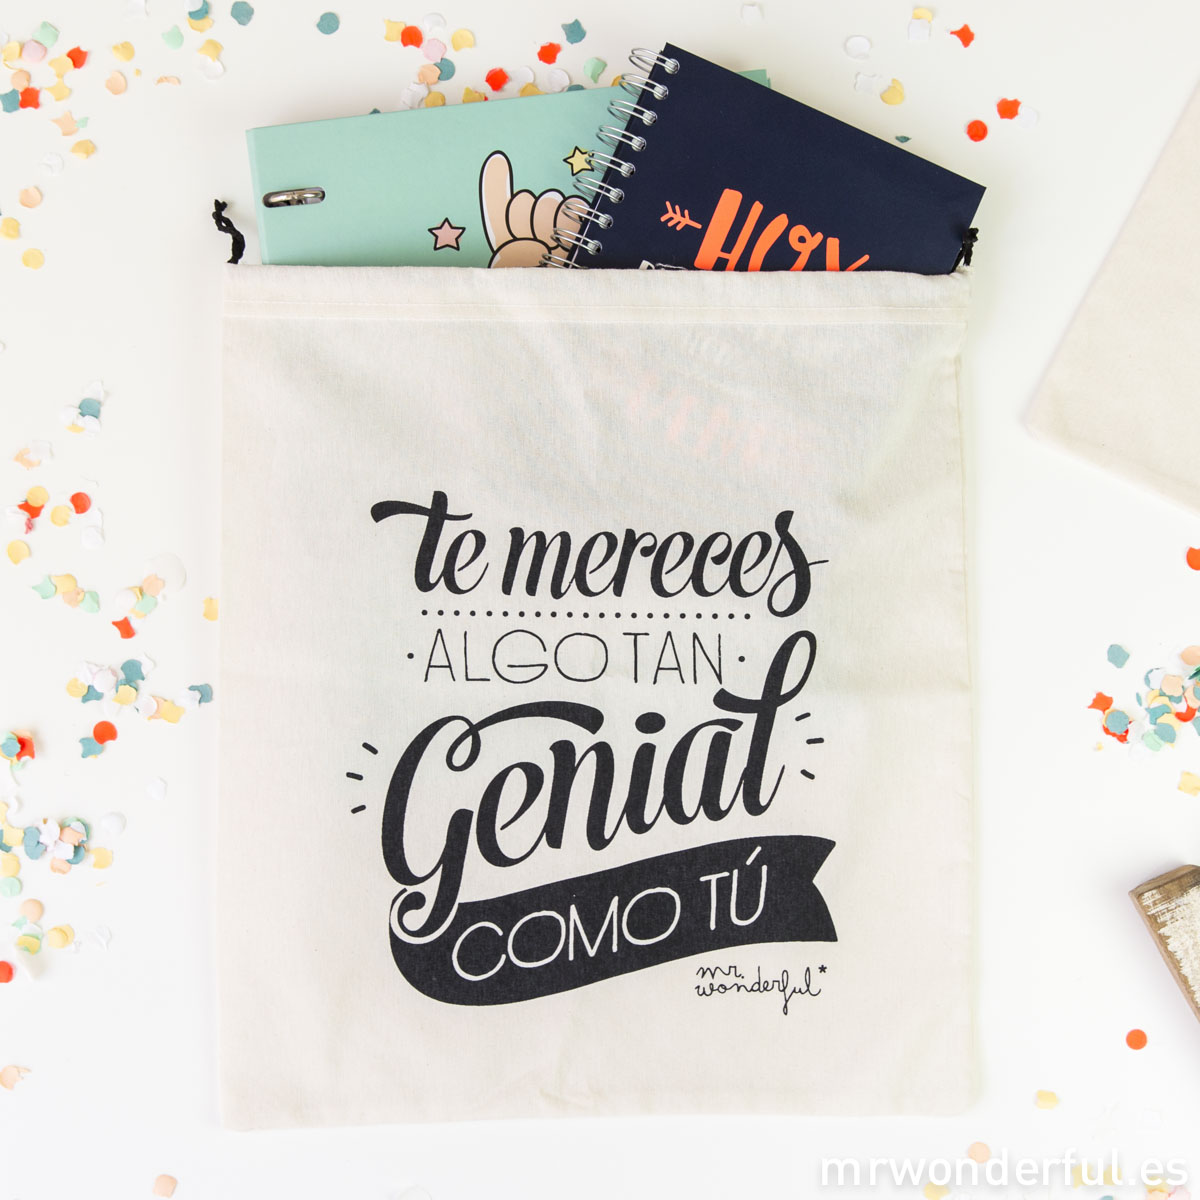 Mr.Wonderful. Bolsa Te mereces algo tan genial como tú